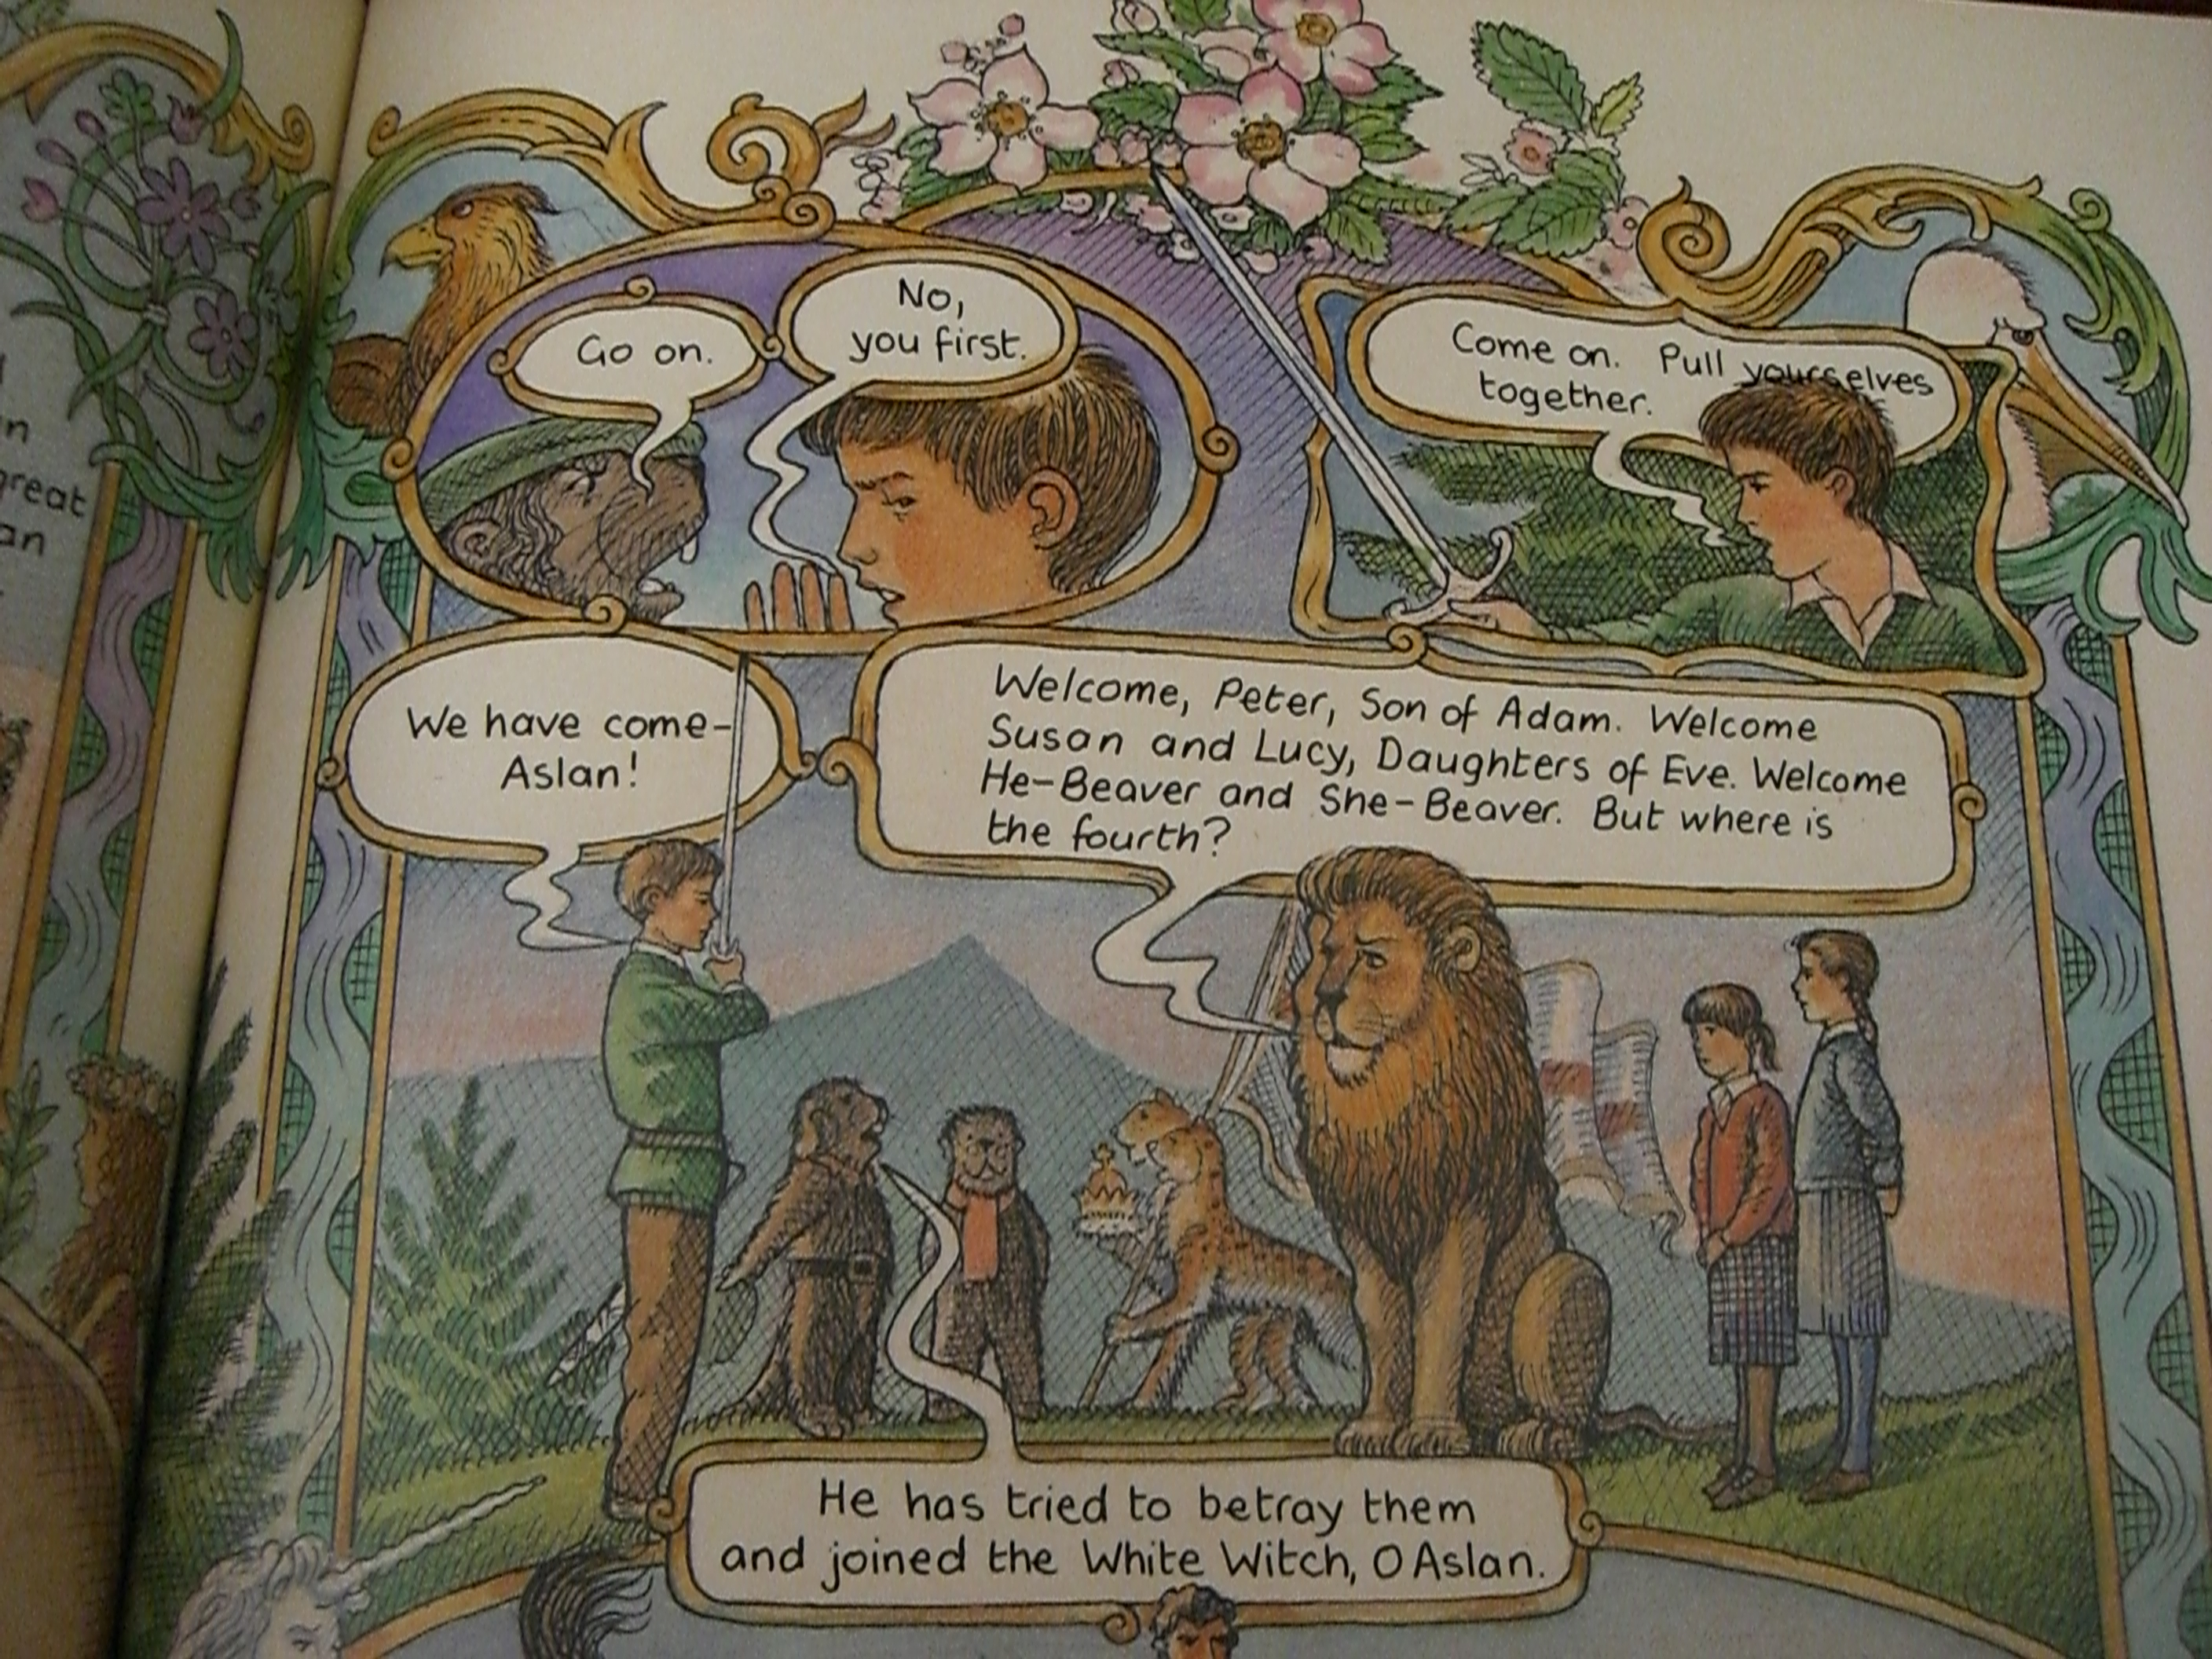 a reading report on the lion the witch and the wardrobe by cs lewis This resource is a 80 page literature unit for c s lewis' novel the lion, the witch and the wardrobe from the chronicles of narnia series it is a digital copy in pdf format.